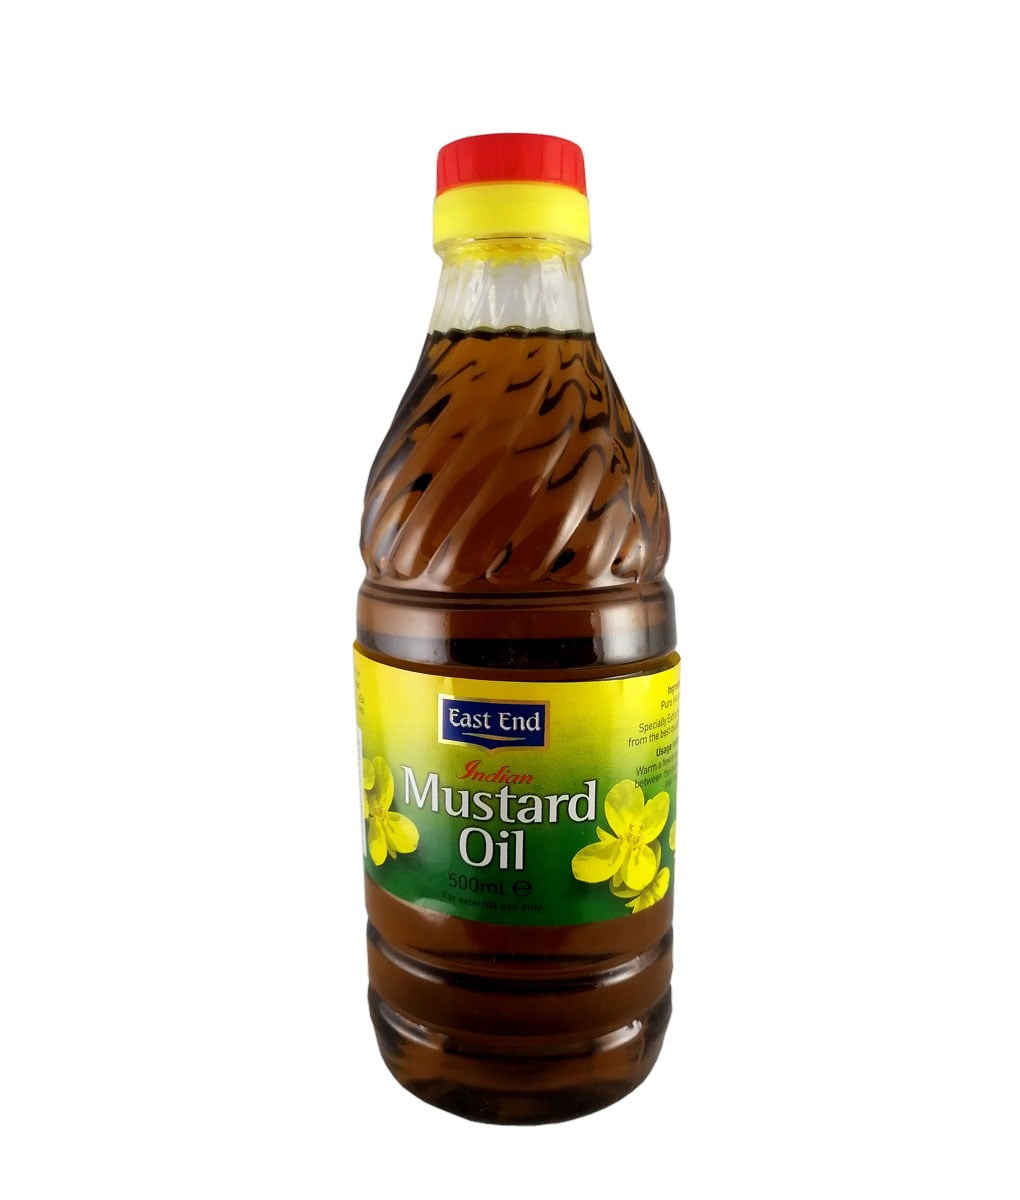 East End Indian Mustard Oil 500 ml - Spice Town - Online ...